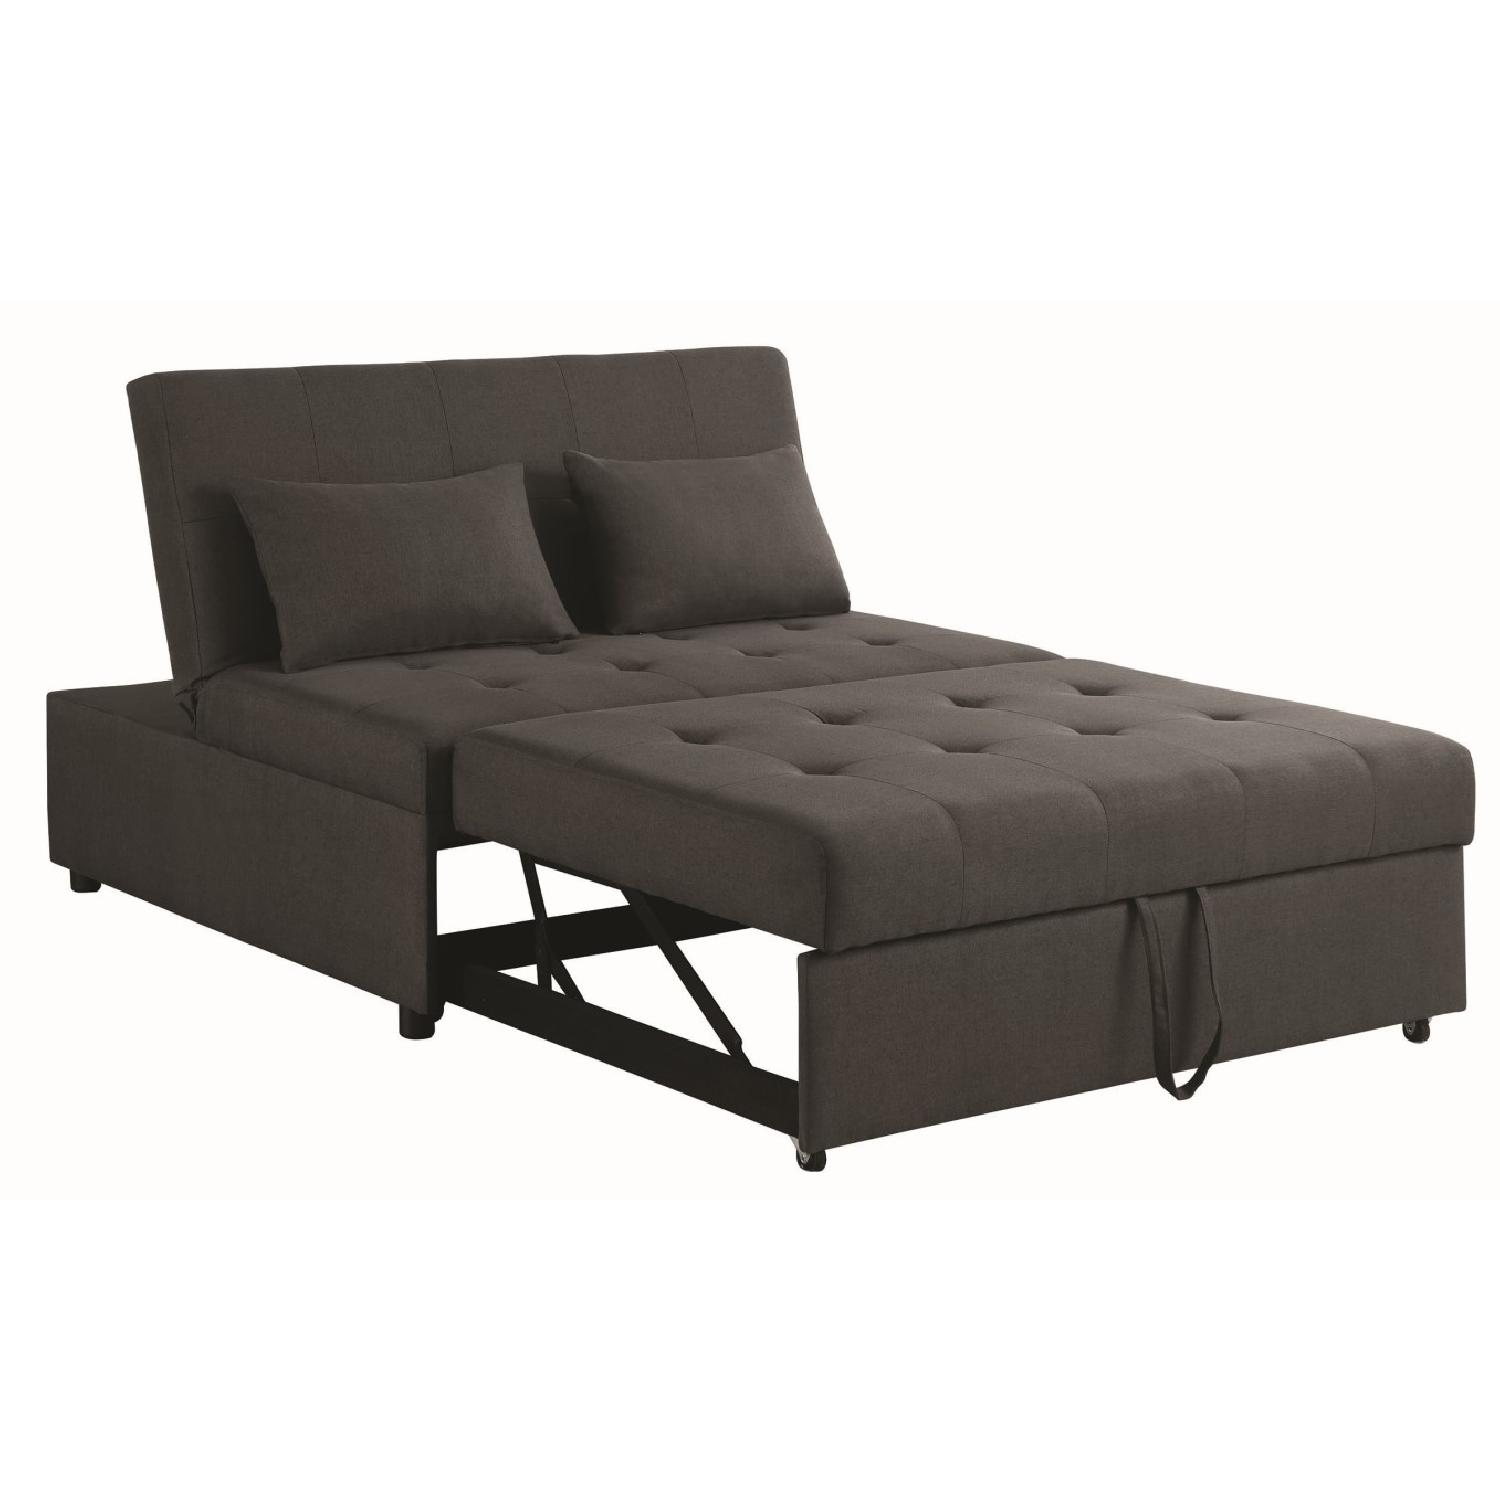 Sofabed in Grey Linen-Like Fabric w/ Pull-Out Sleeper - image-1